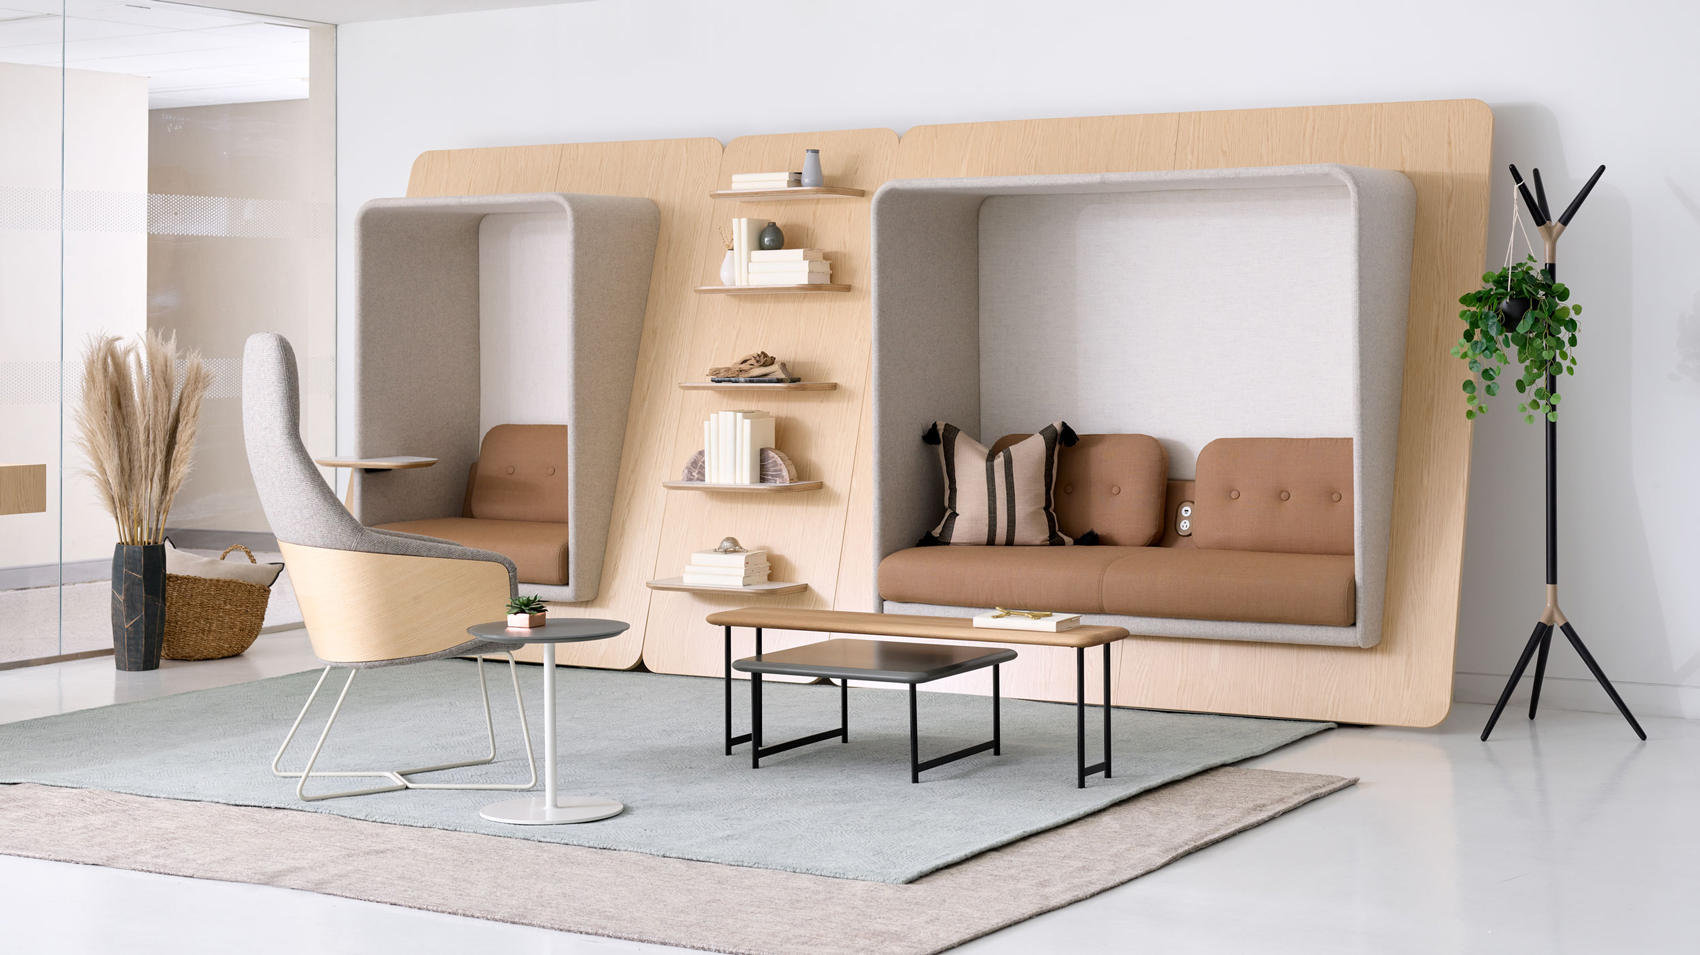 Private lounge area with workstation